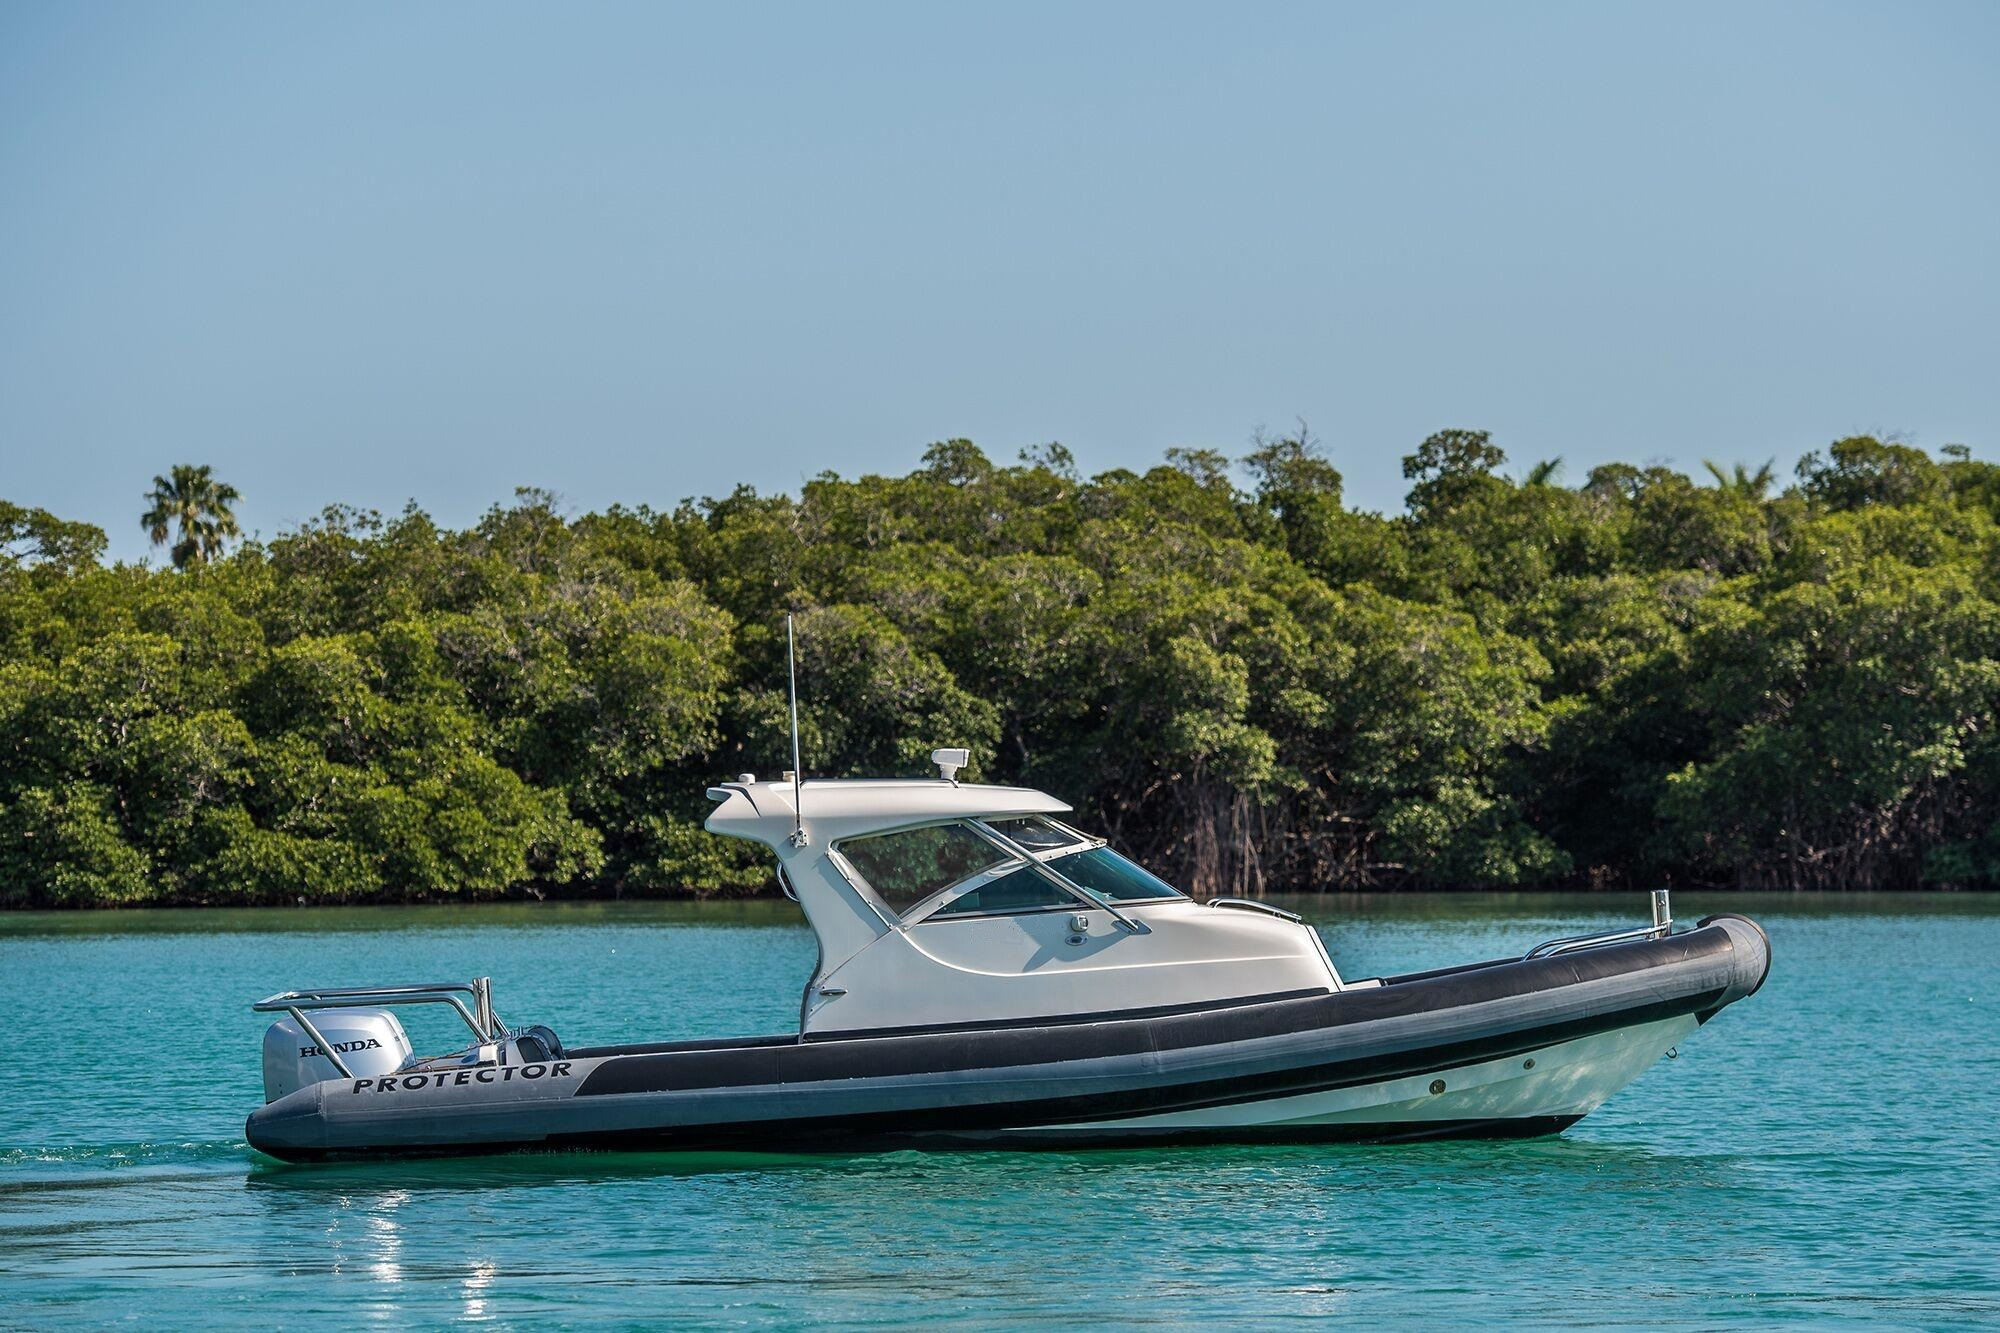 The Protector 28 Targa, built for tough duty in New Zealand.